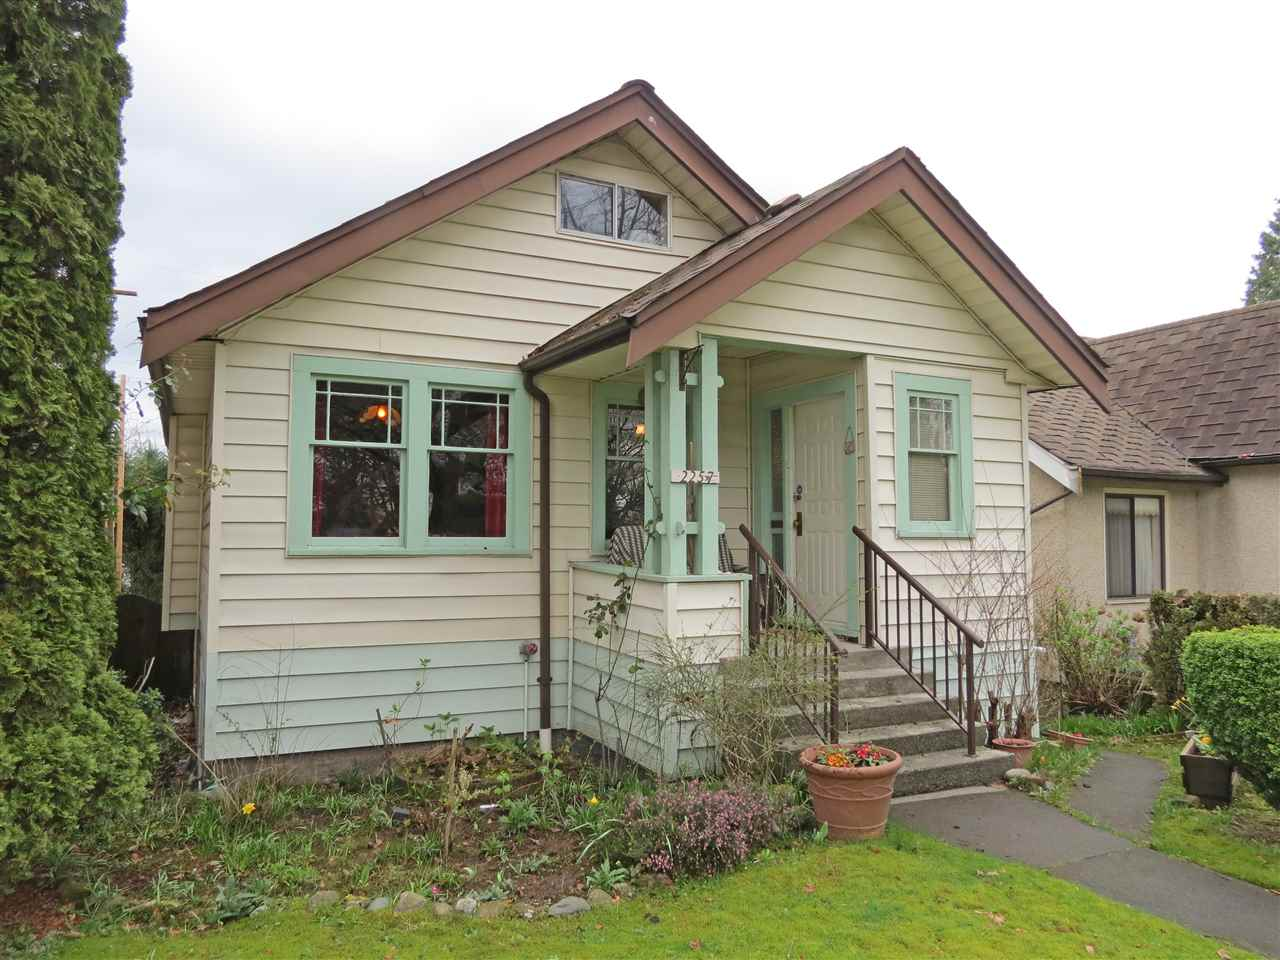 Main Photo: 2257 E 2ND Avenue in Vancouver: Grandview VE House for sale (Vancouver East)  : MLS(r) # R2052995